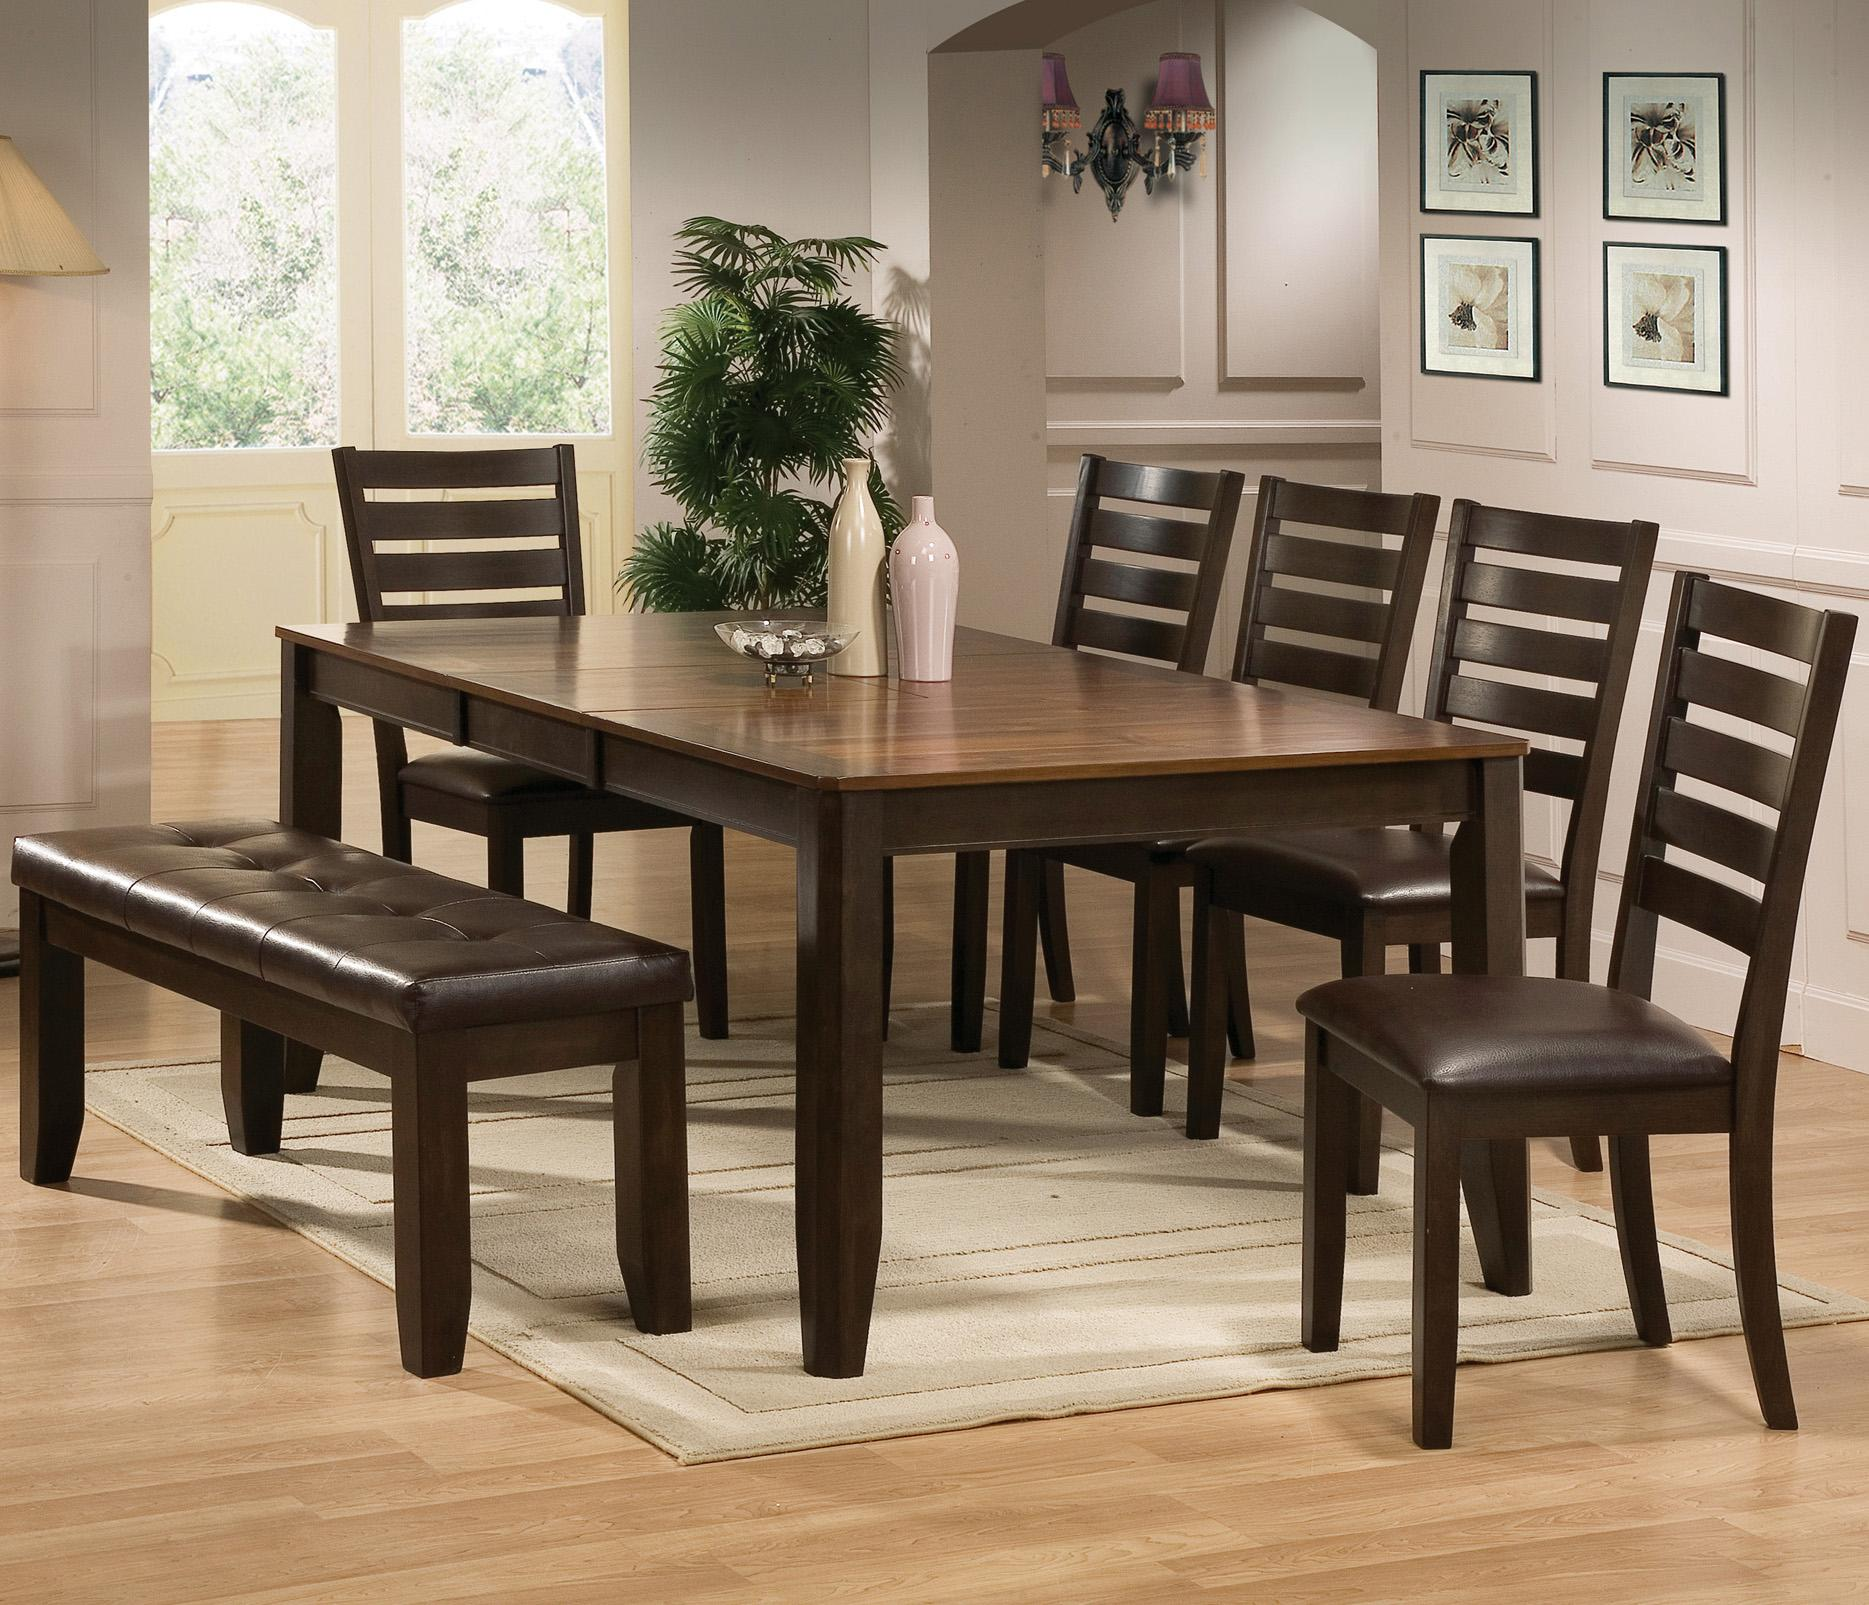 crown mark elliott 7 piece dining table and chairs set with bench dunk bright furniture. Black Bedroom Furniture Sets. Home Design Ideas